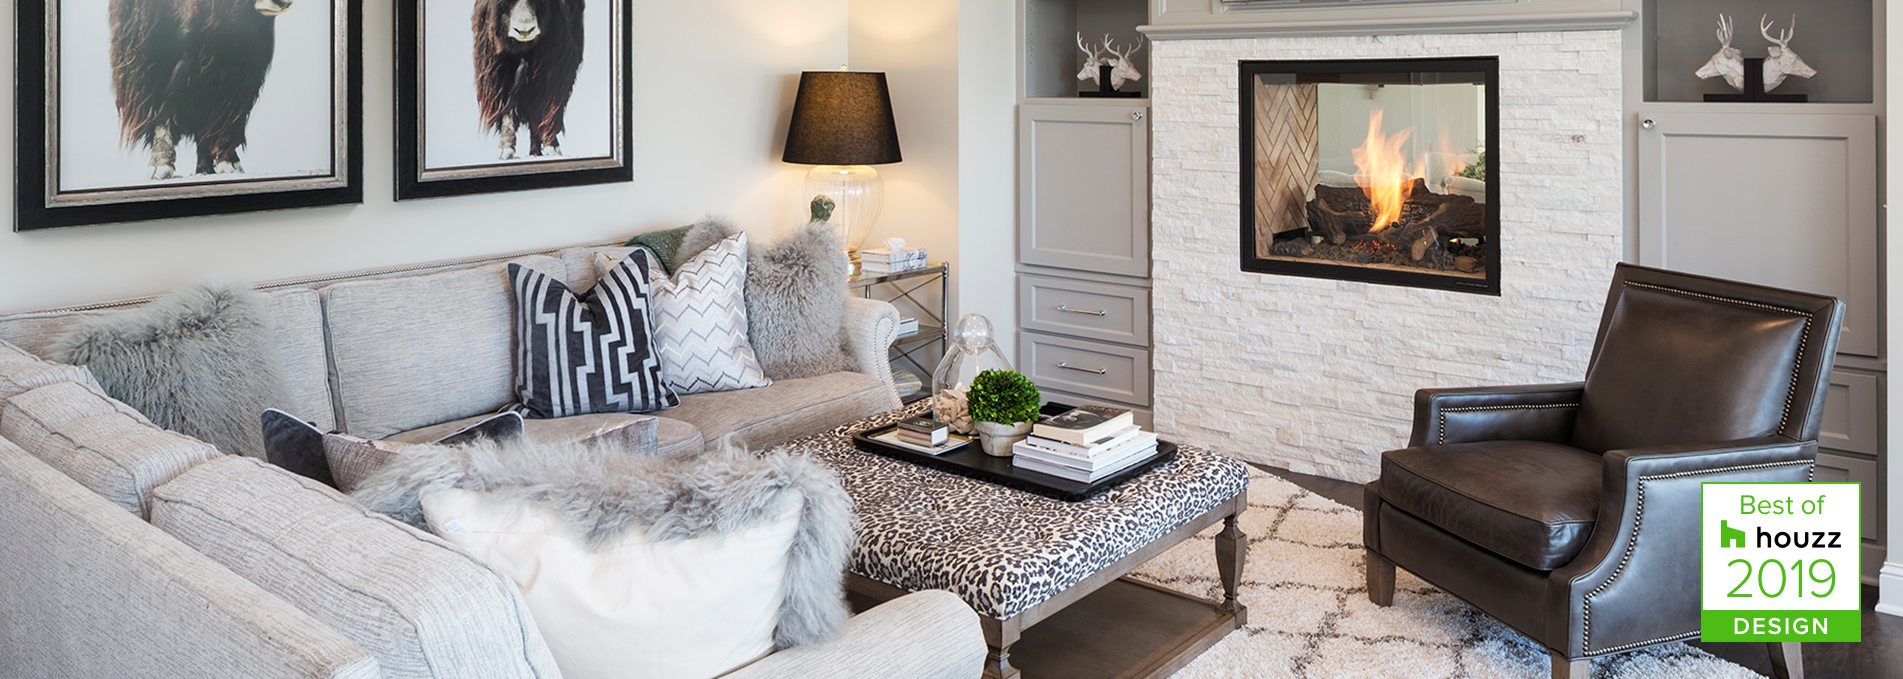 Best of Houzz 2019